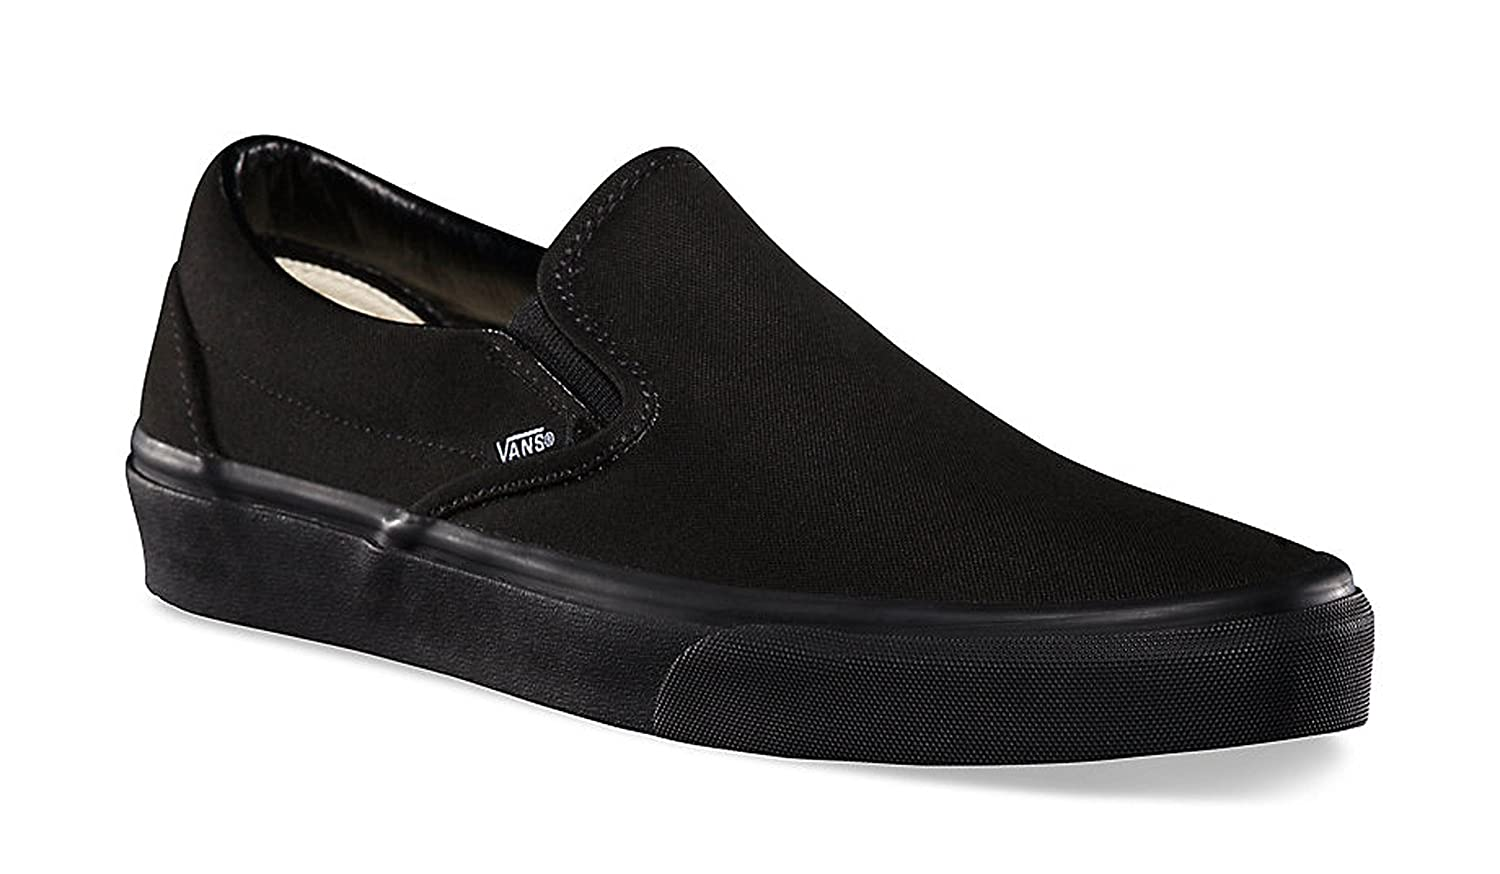 Vans メンズ US サイズ: 13 B(M) US Women/11.5 D(M) US Men B07C9DR3WN